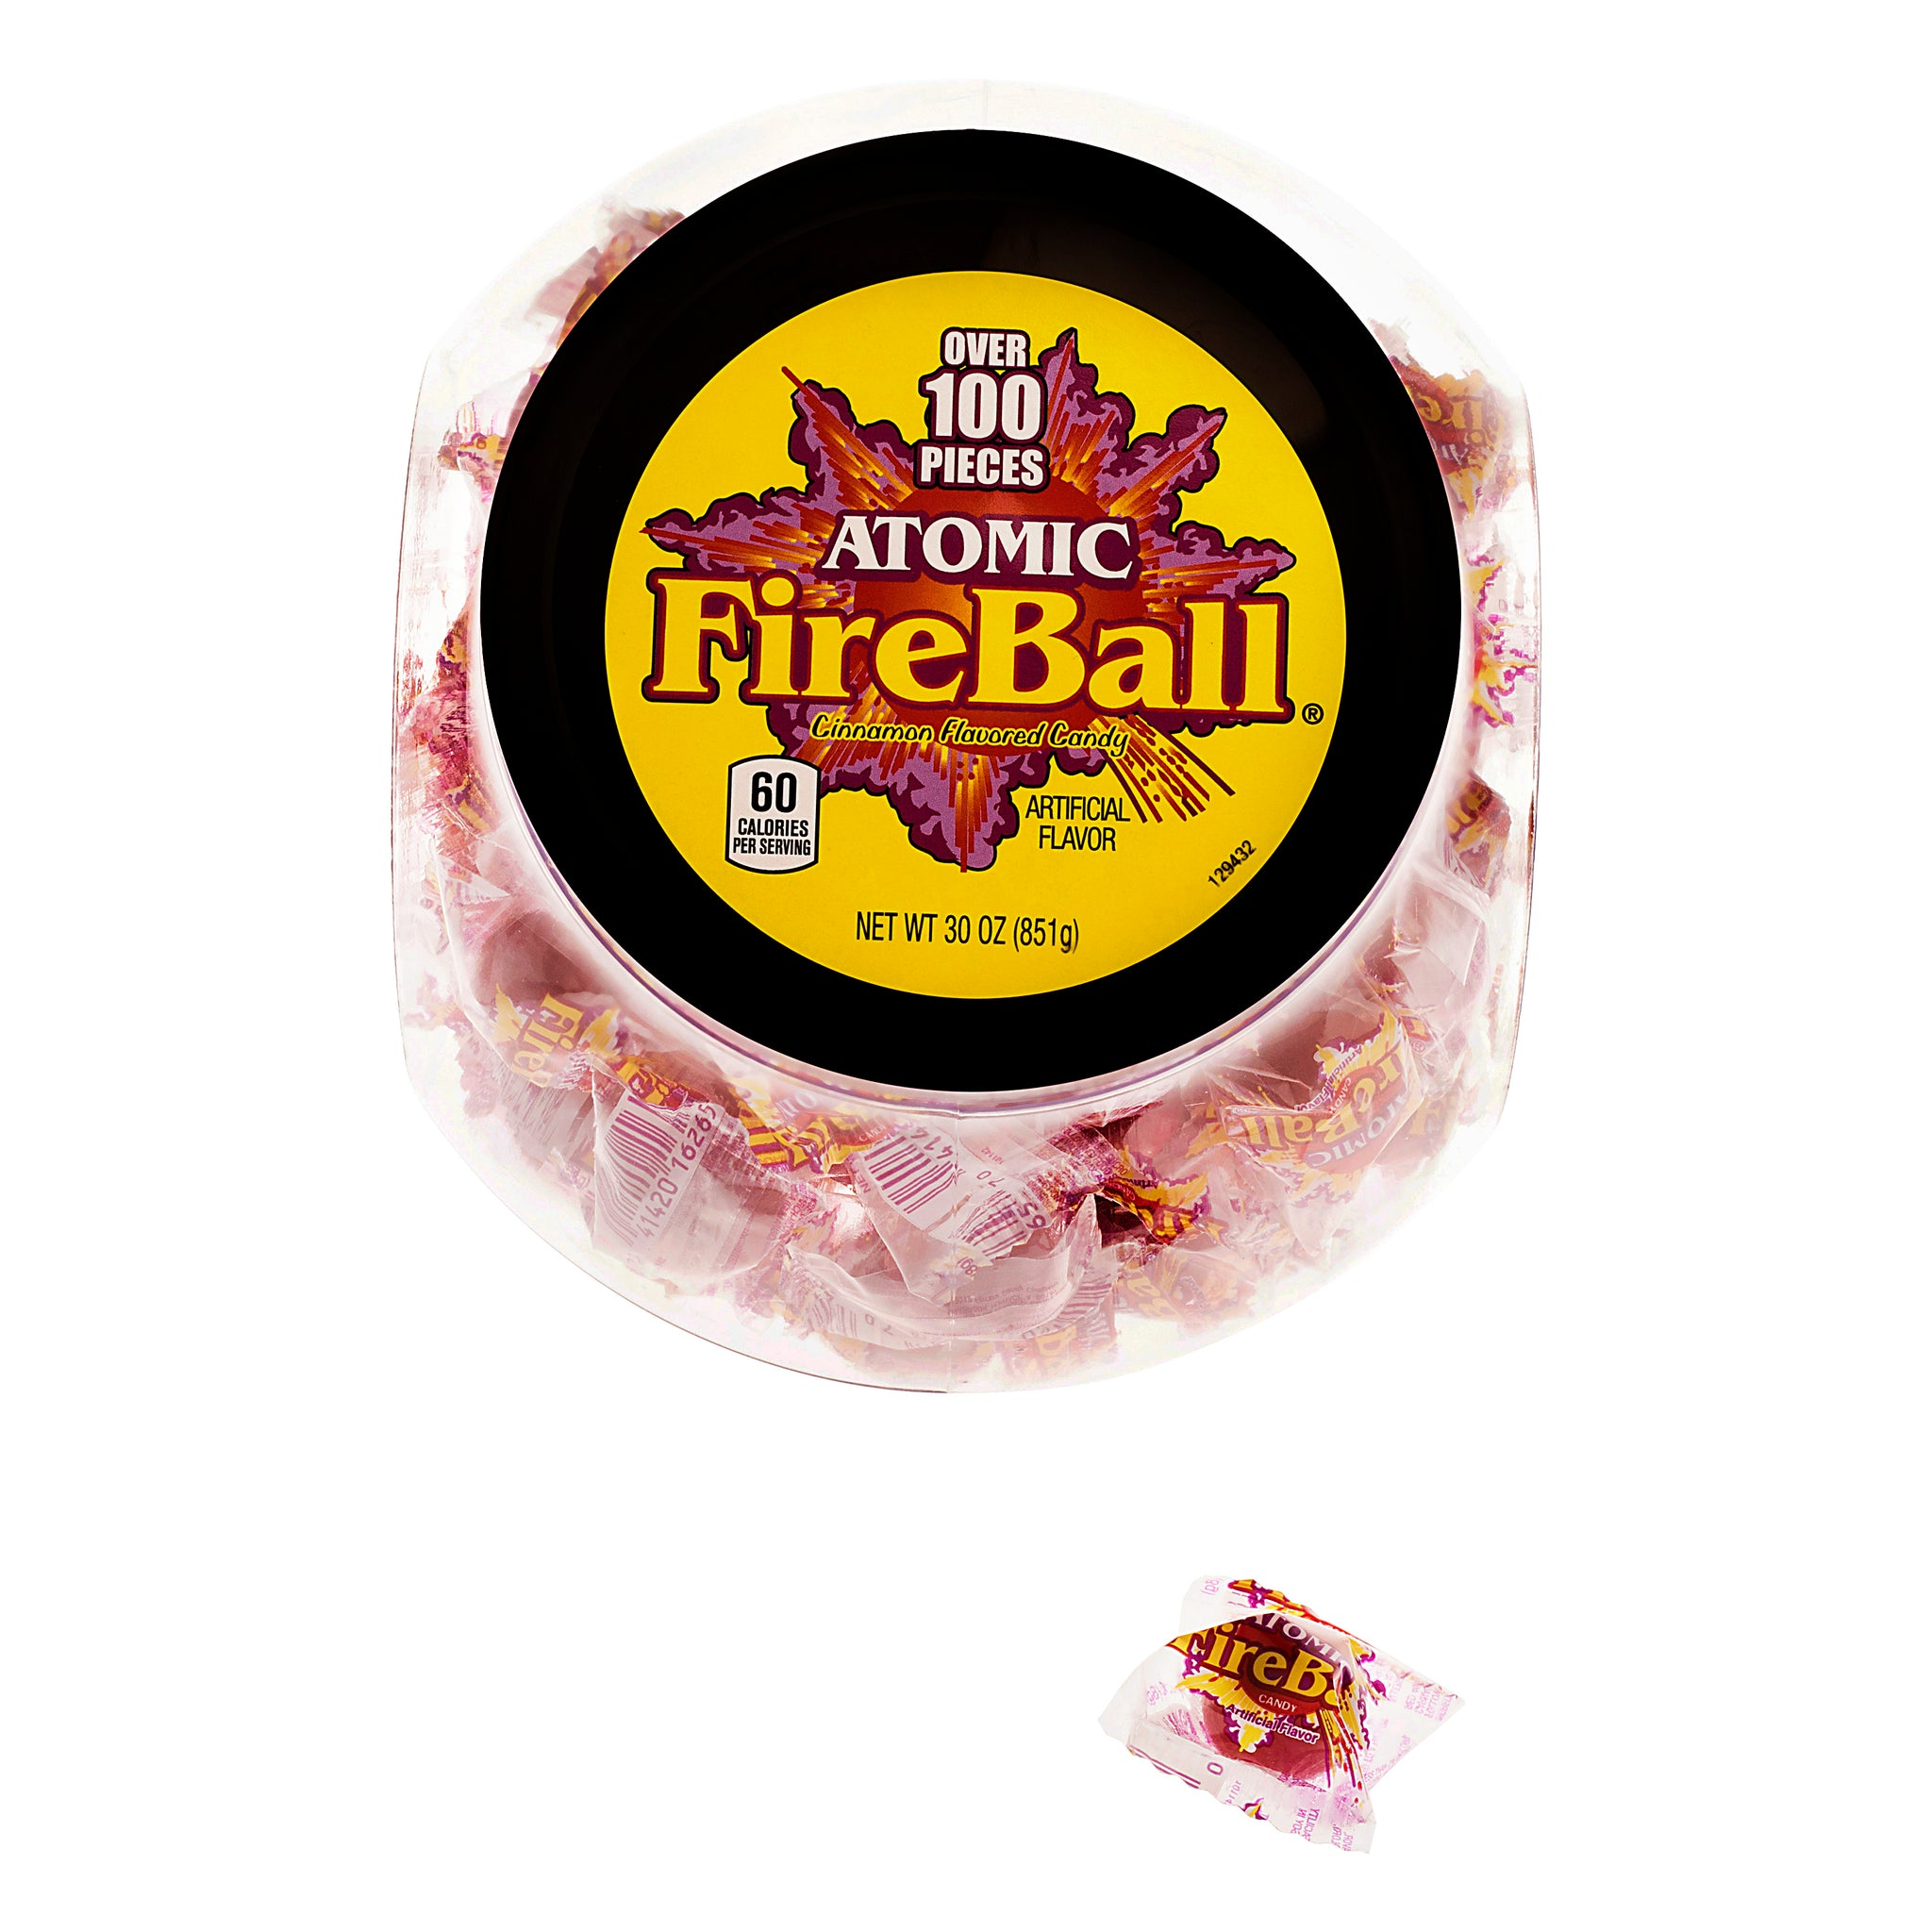 Atomic Fire Ball Cinnamon Flavored Candy, 30 Oz